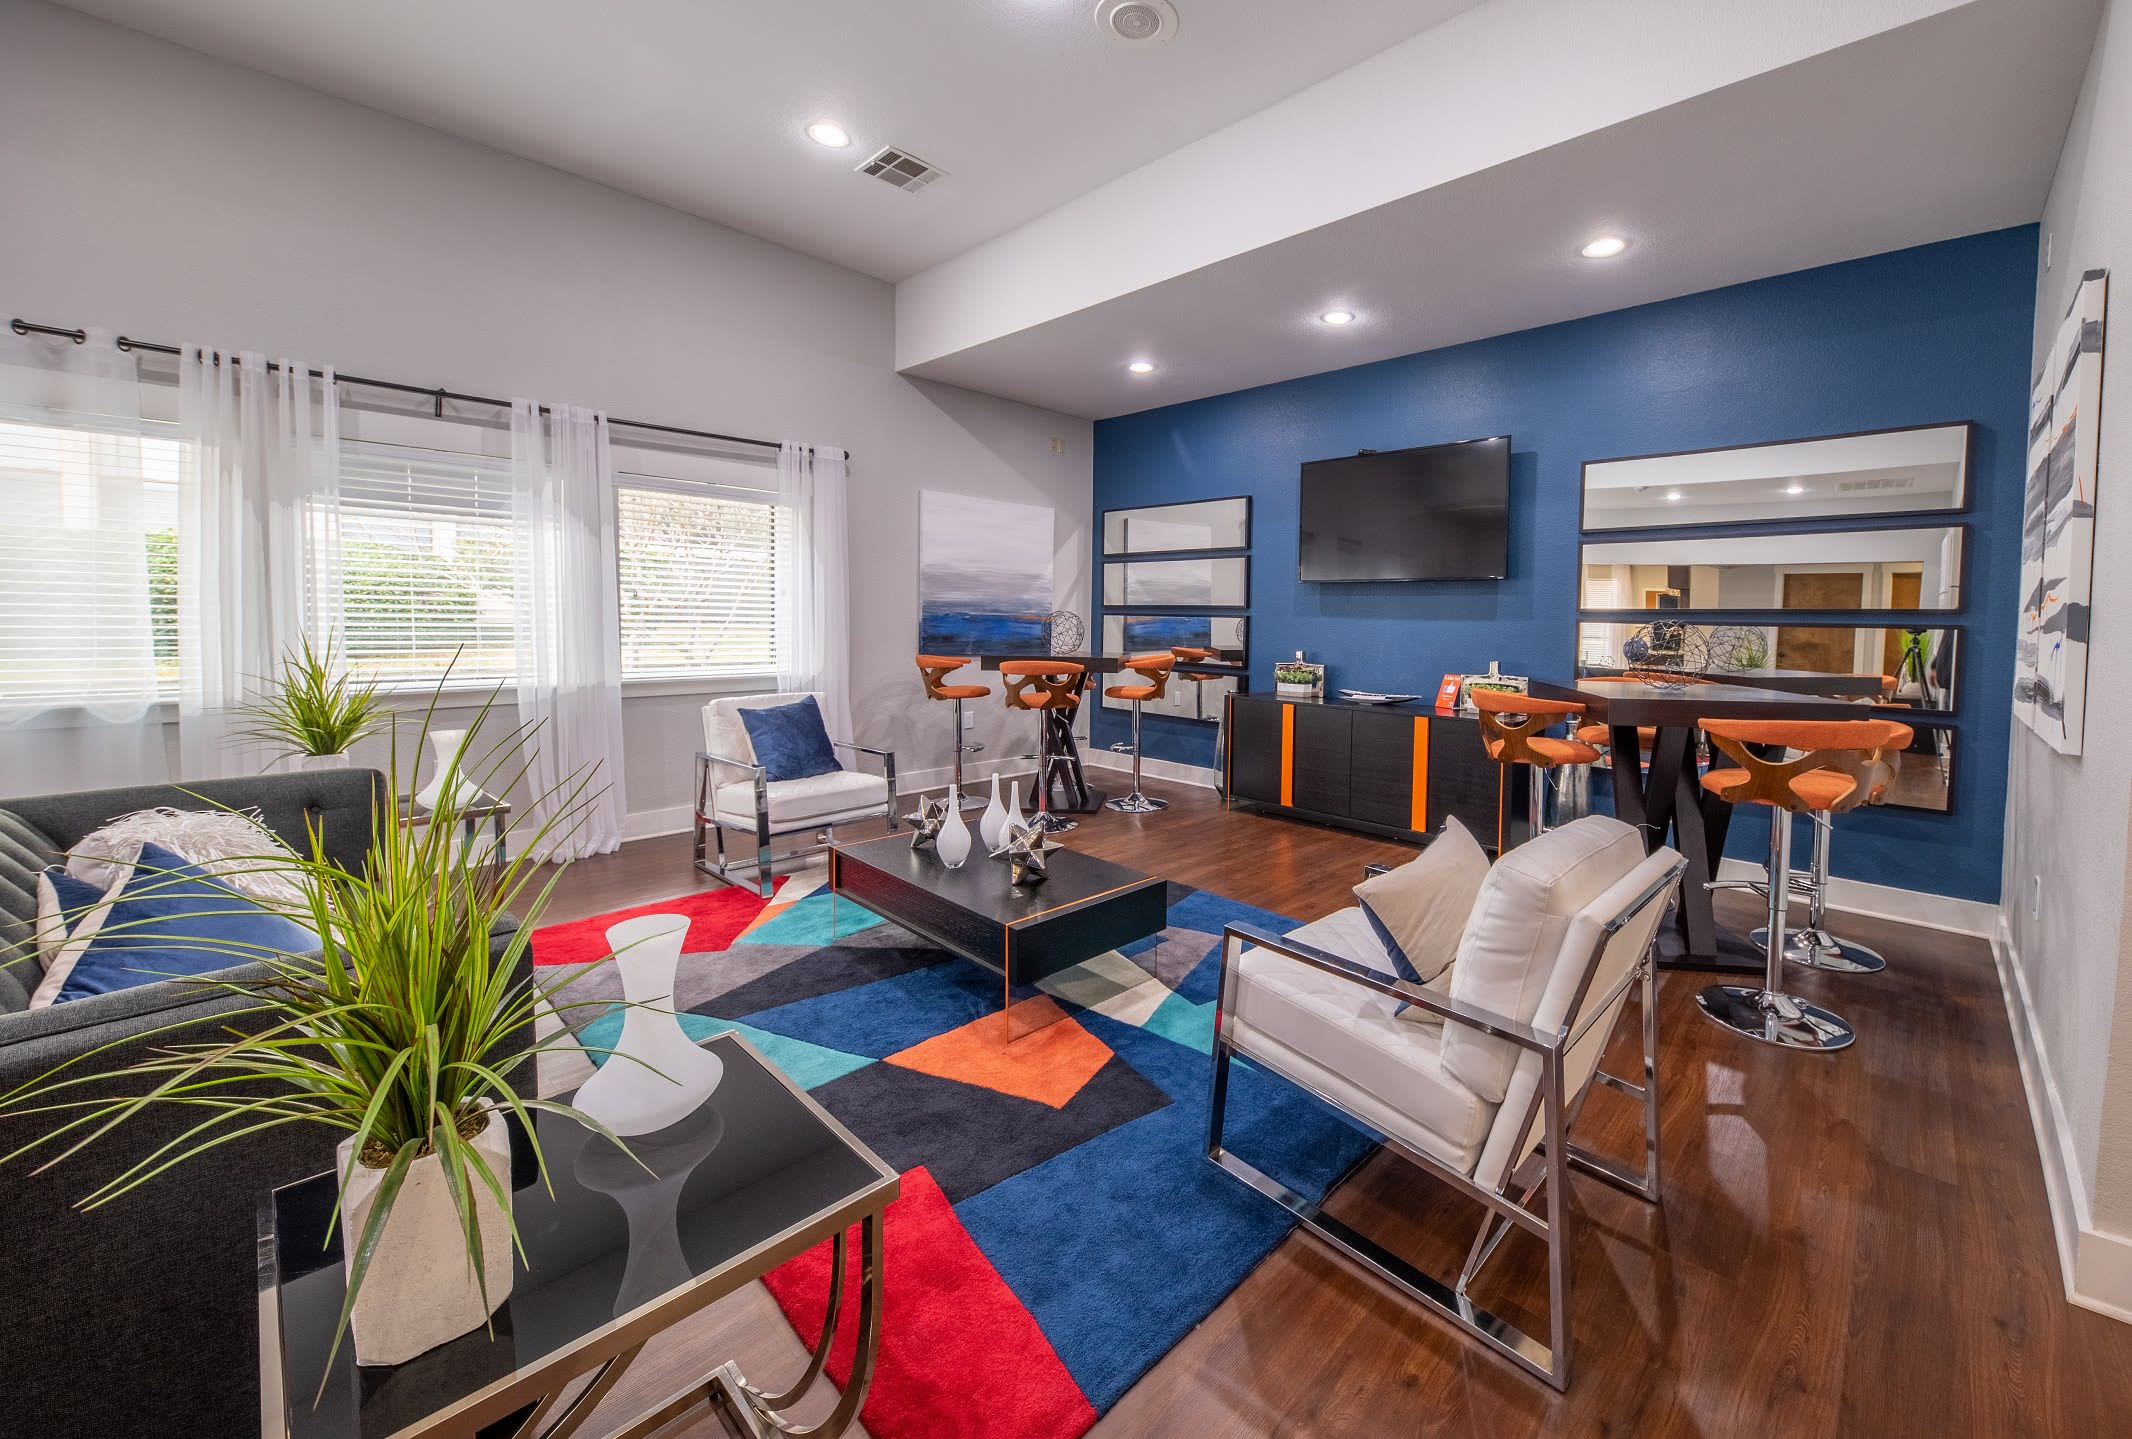 Model apartment at Ridgeview Place in Irving, Texas